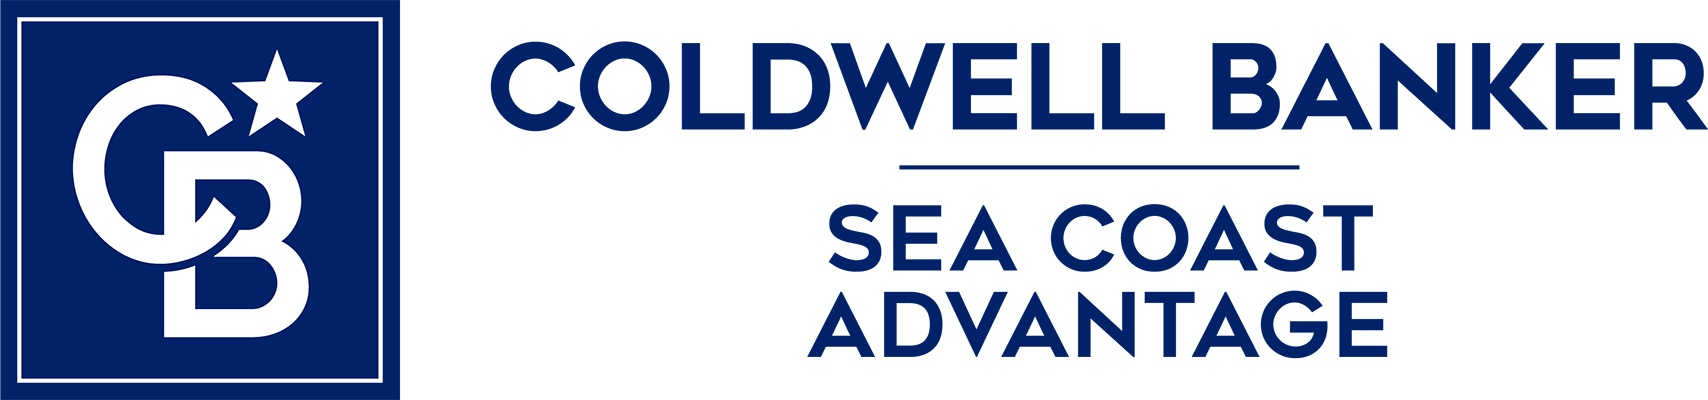 Doug Kesling - Coldwell Banker Sea Coast Advantage Realty